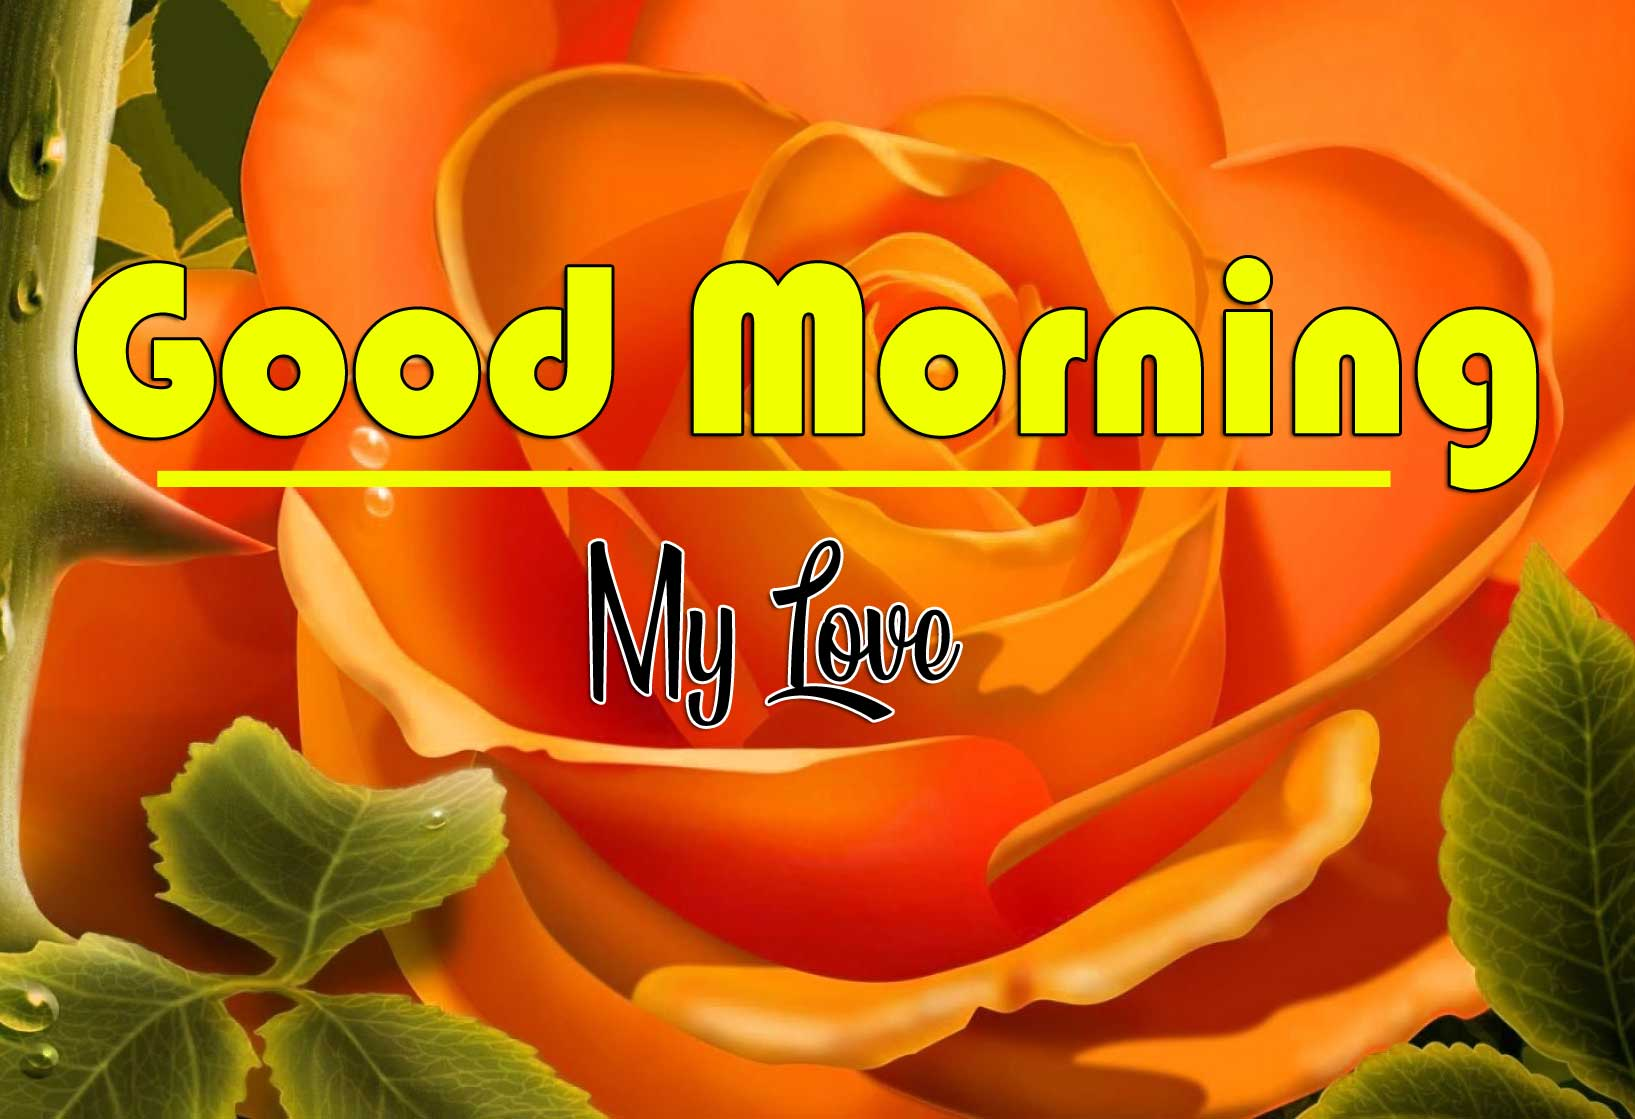 Sweet Good Morning Wishes Wallpaper Pics Download